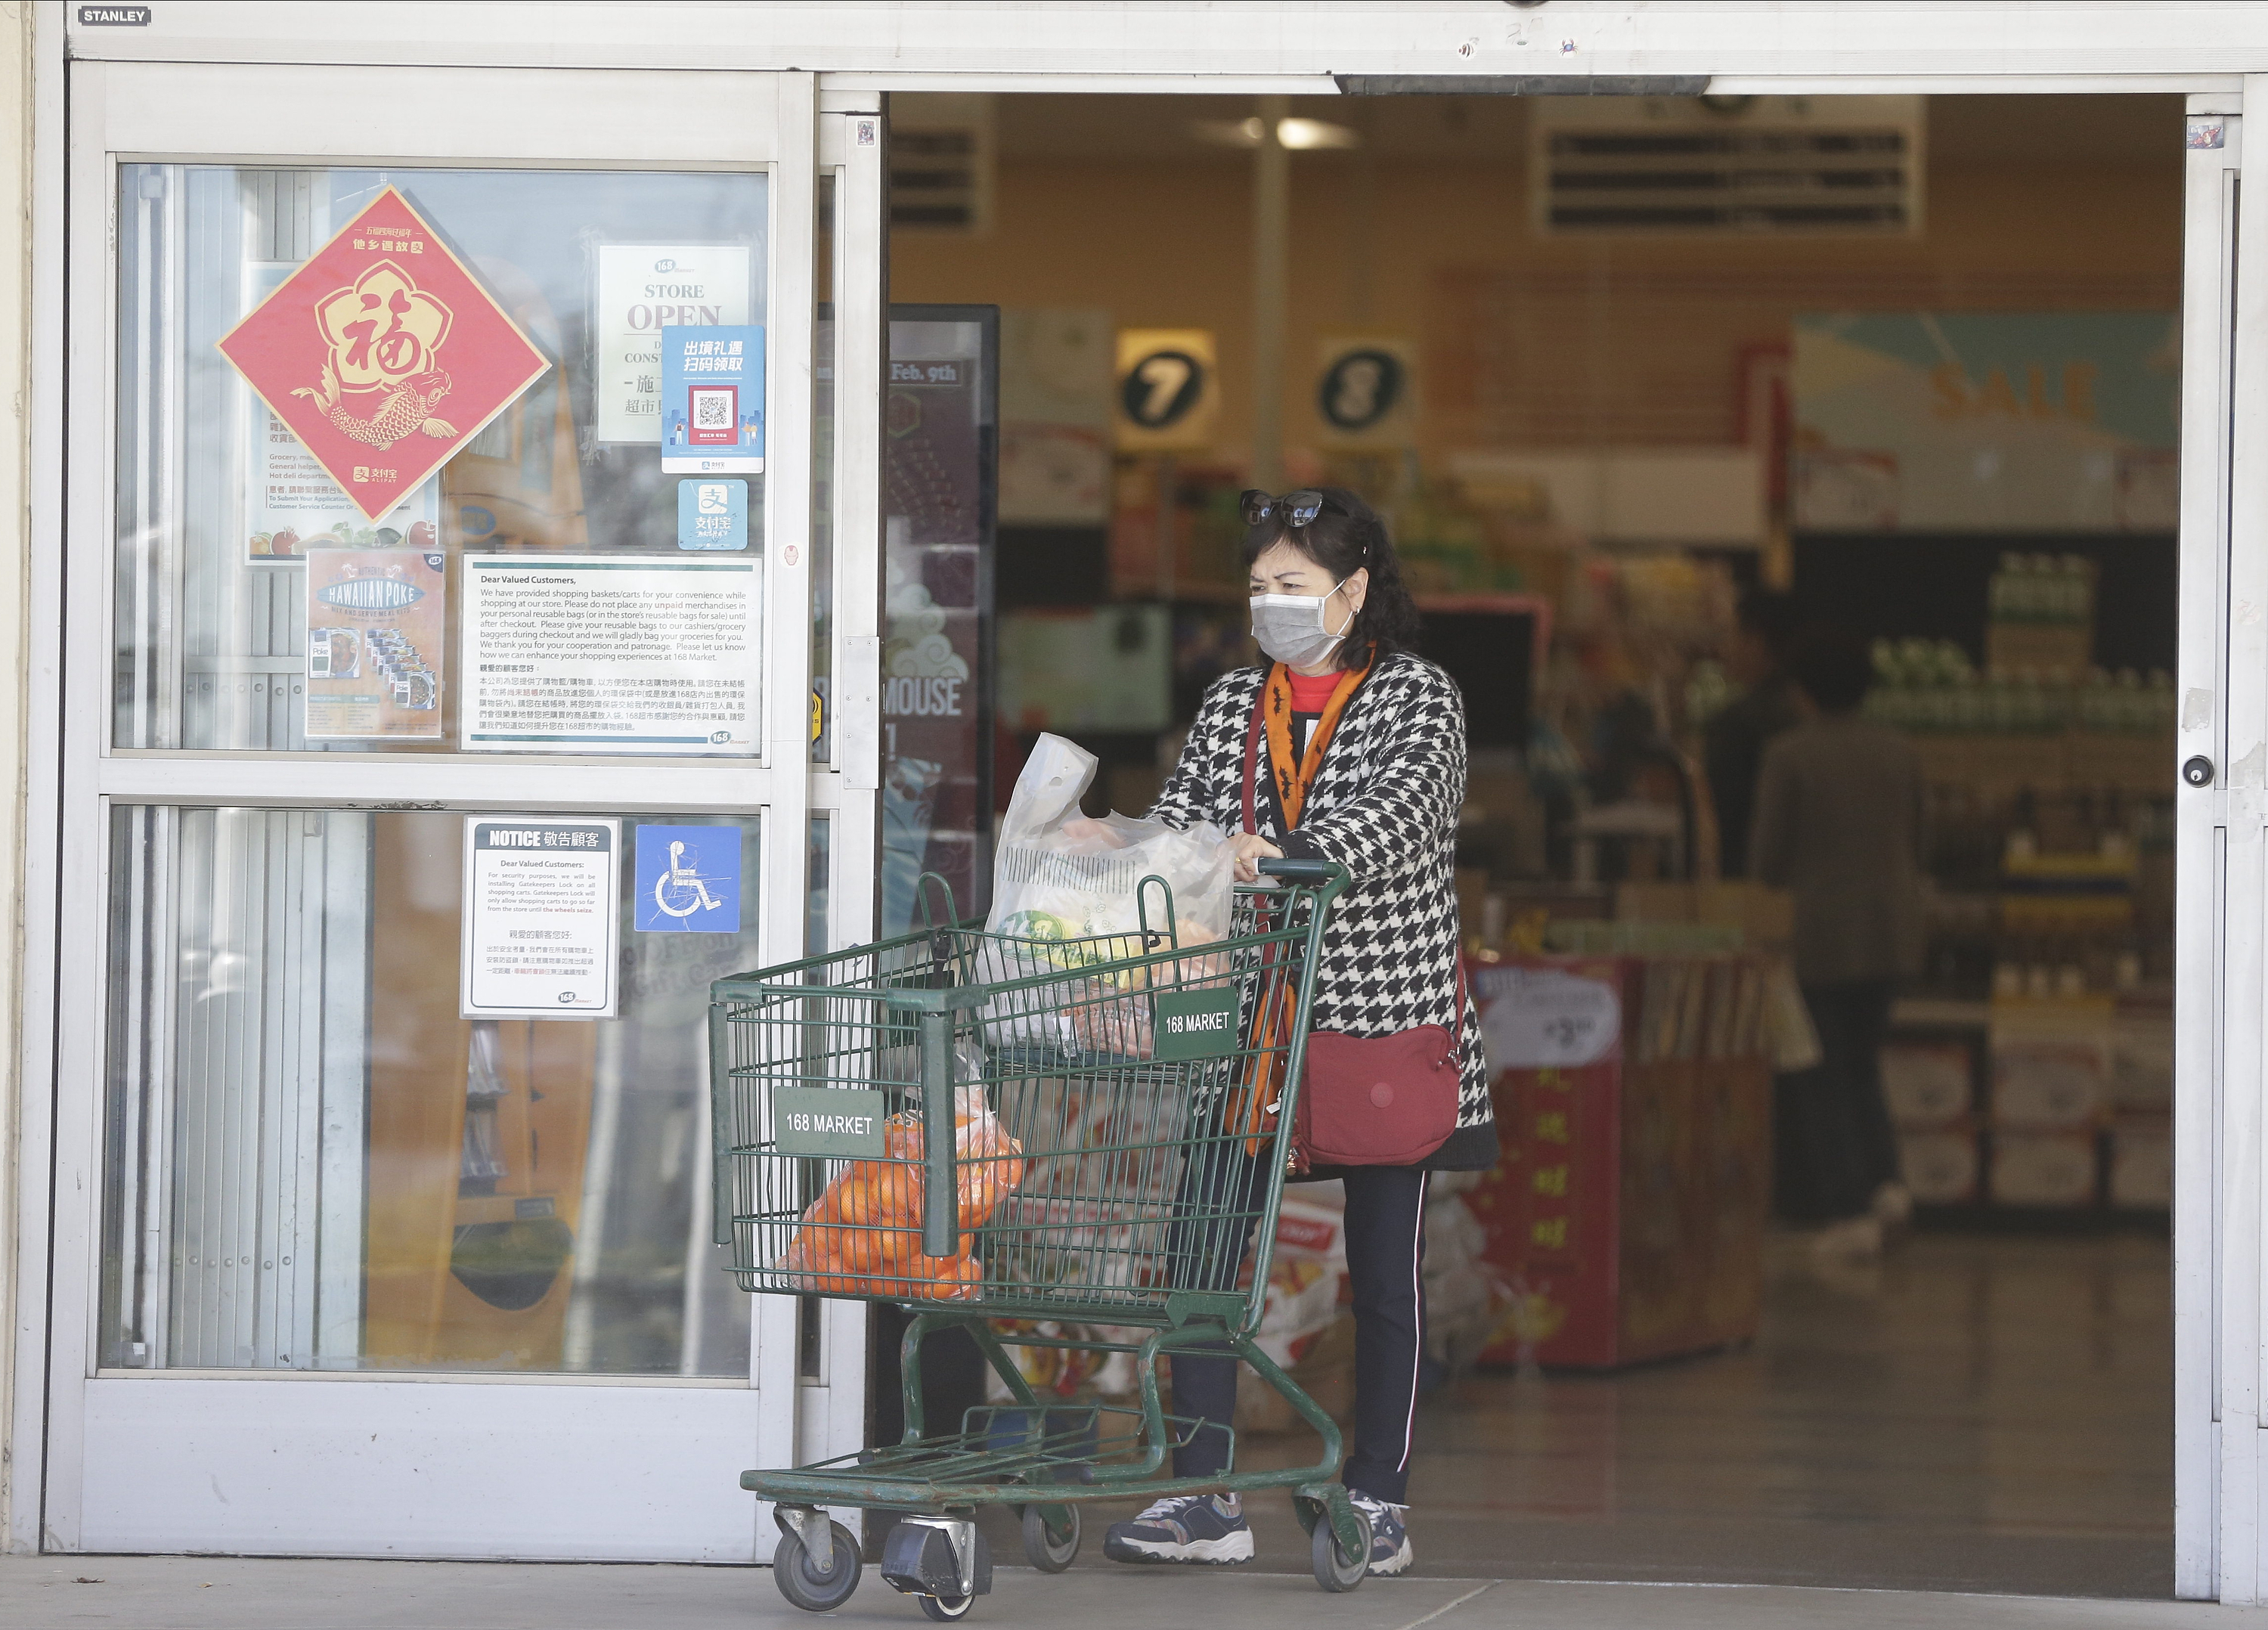 A customer wears a face mask as she shops at the 168 Market in Alhambra, Calif., on Jan. 31, 2020.